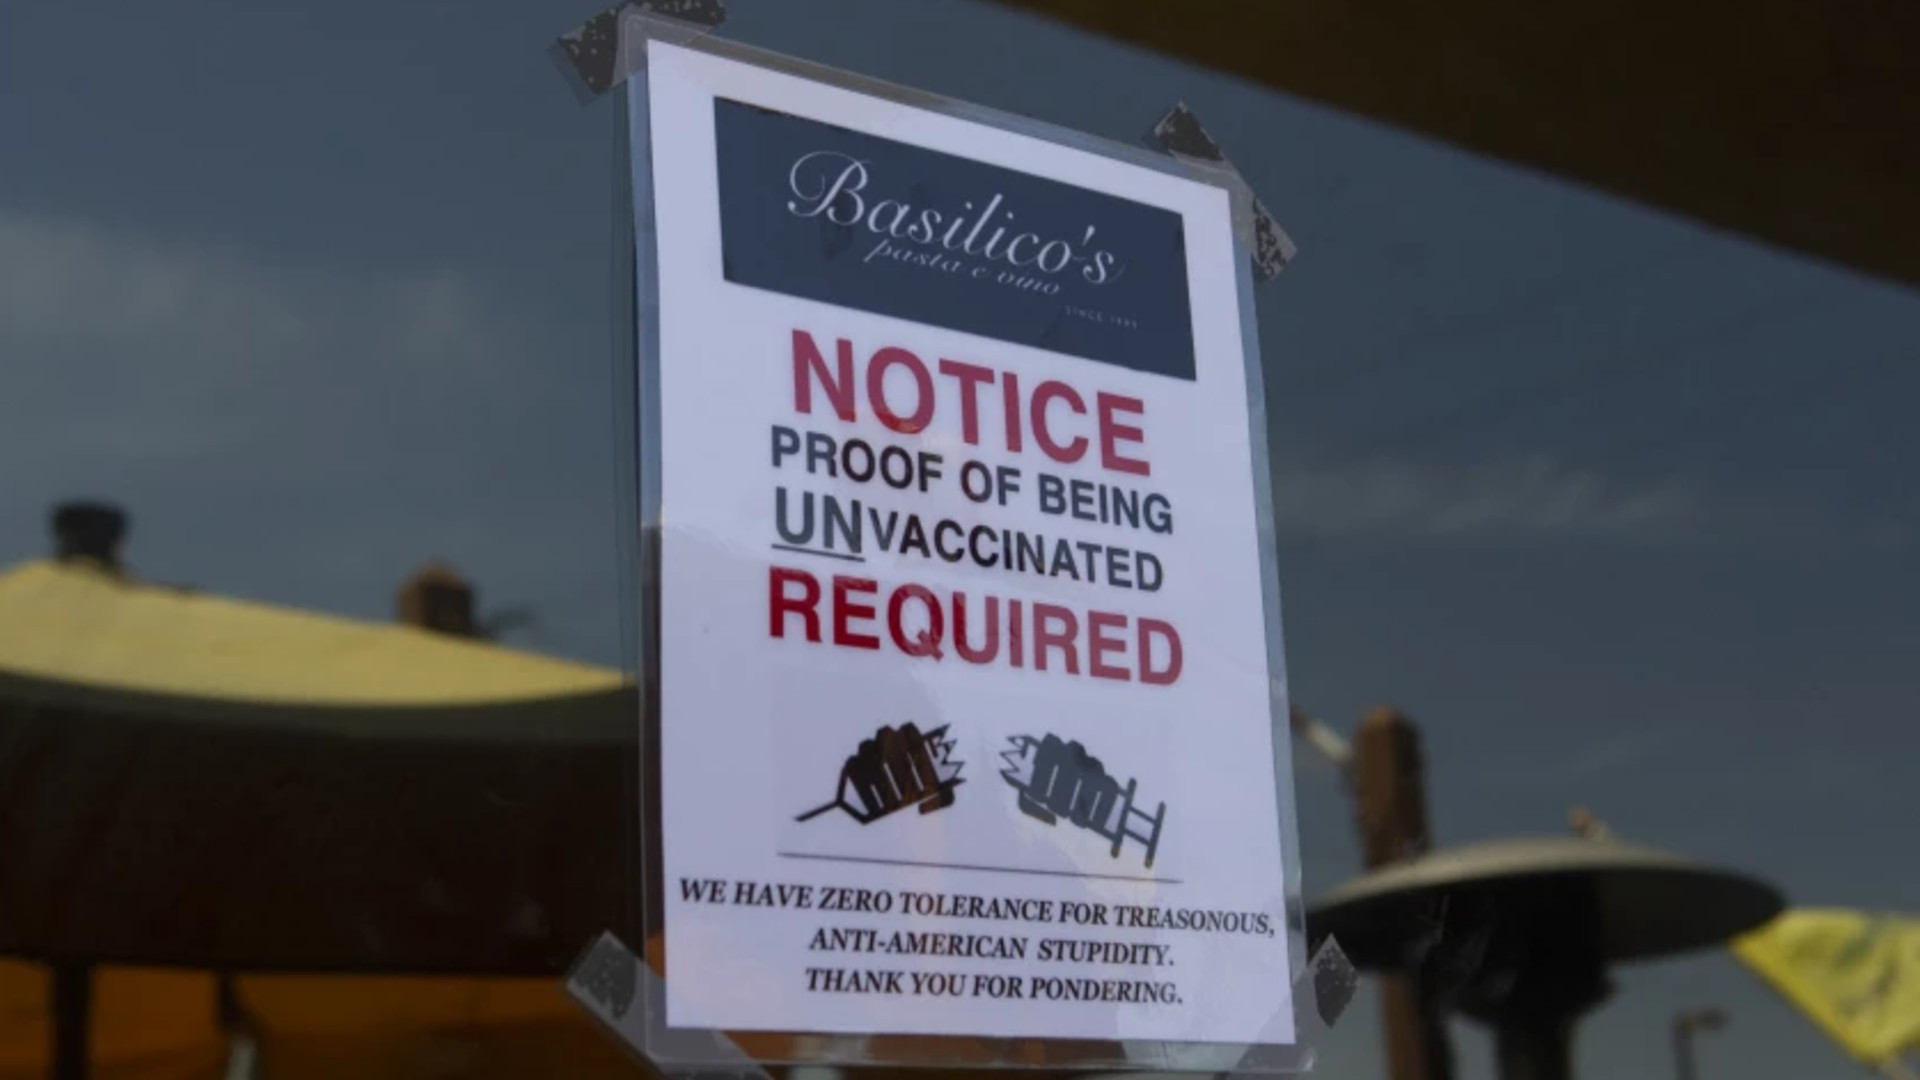 A sign outside Basilico's restaurant in Huntington Beach says patrons must be unvaccinated to enter.(Madeleine Hordinski / Los Angeles Times)